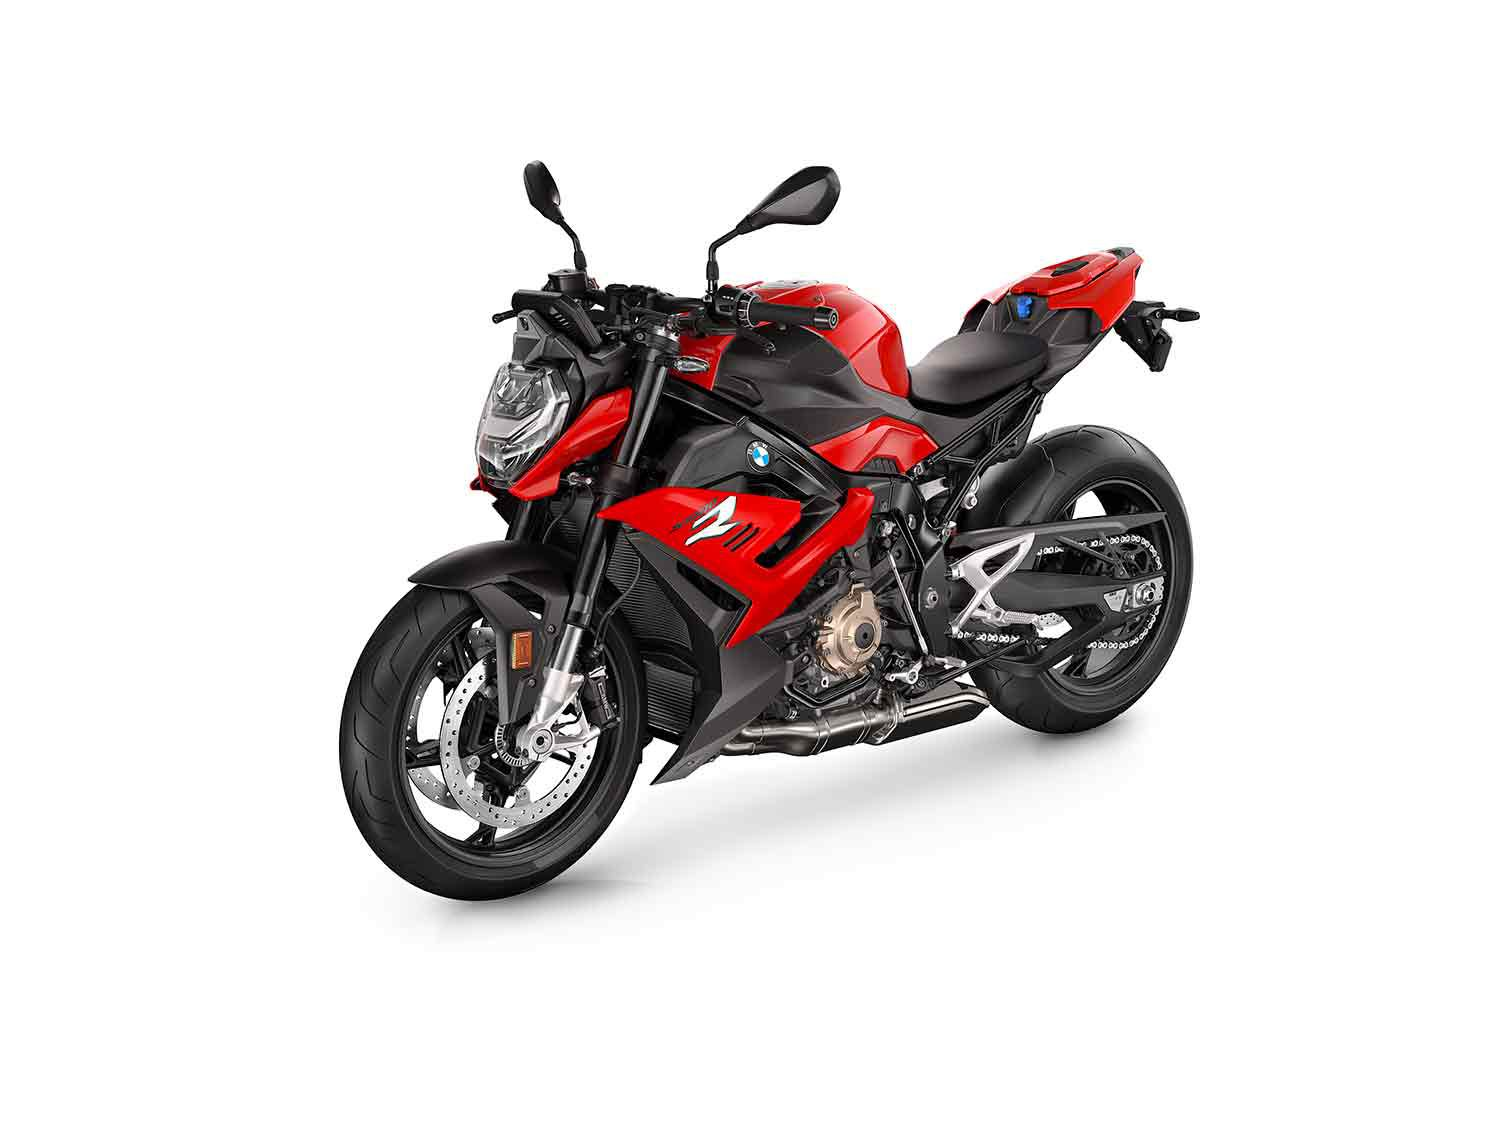 2021 BMW S 1000 R in Racing Red colorway.